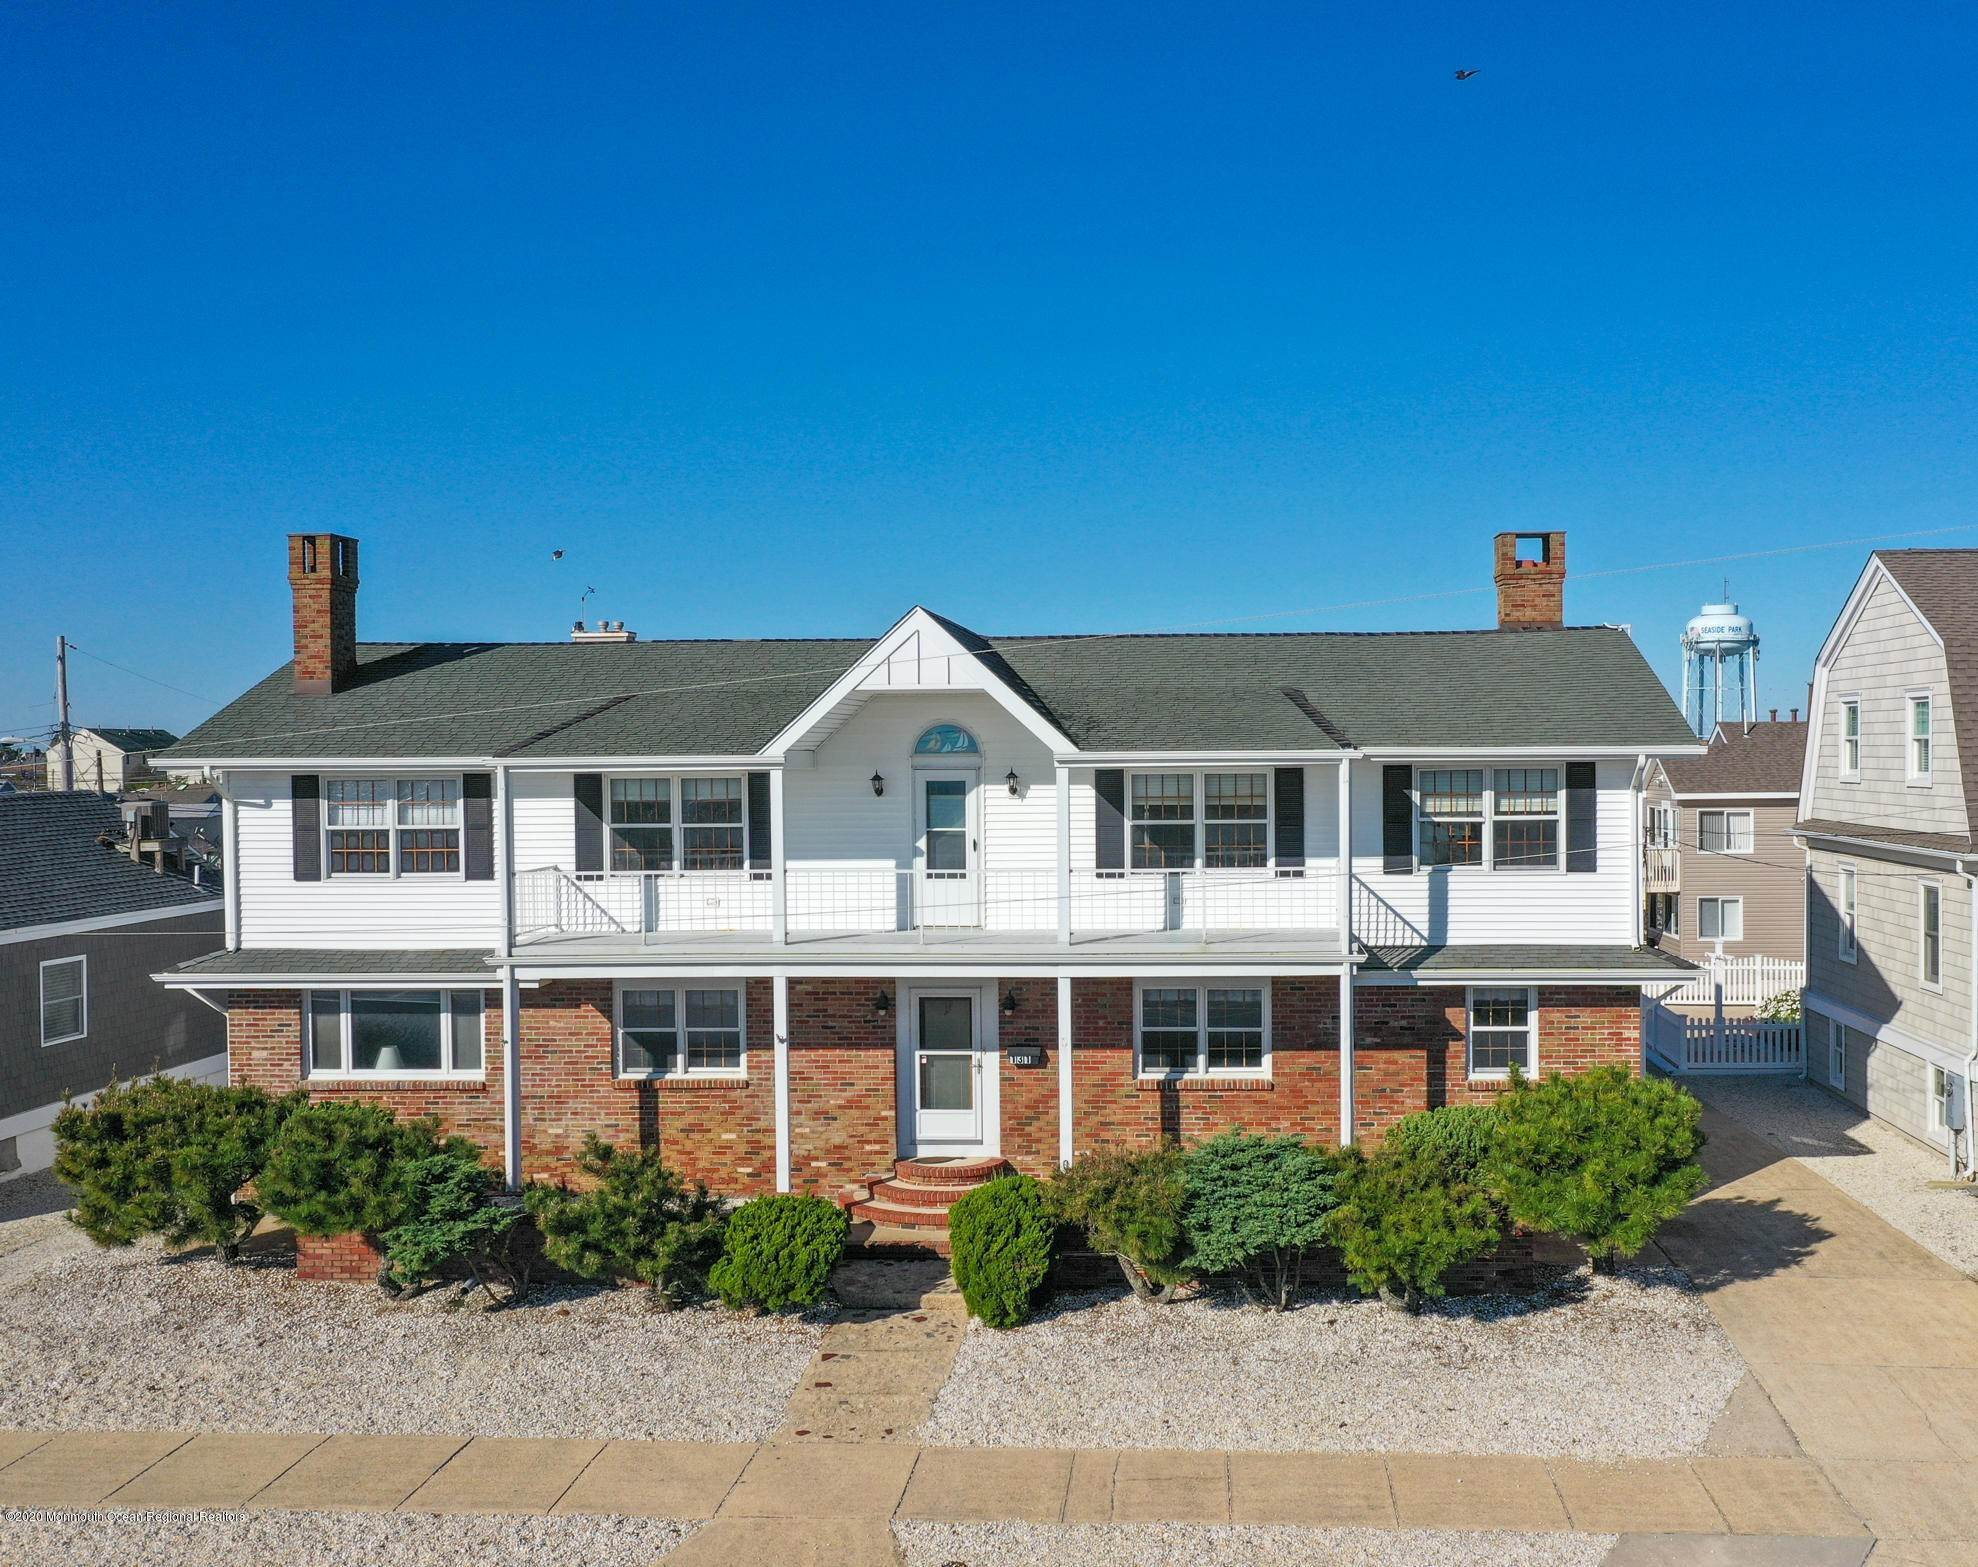 Property for Sale at 1311 Ocean Avenue Seaside Park, New Jersey 08752 United States